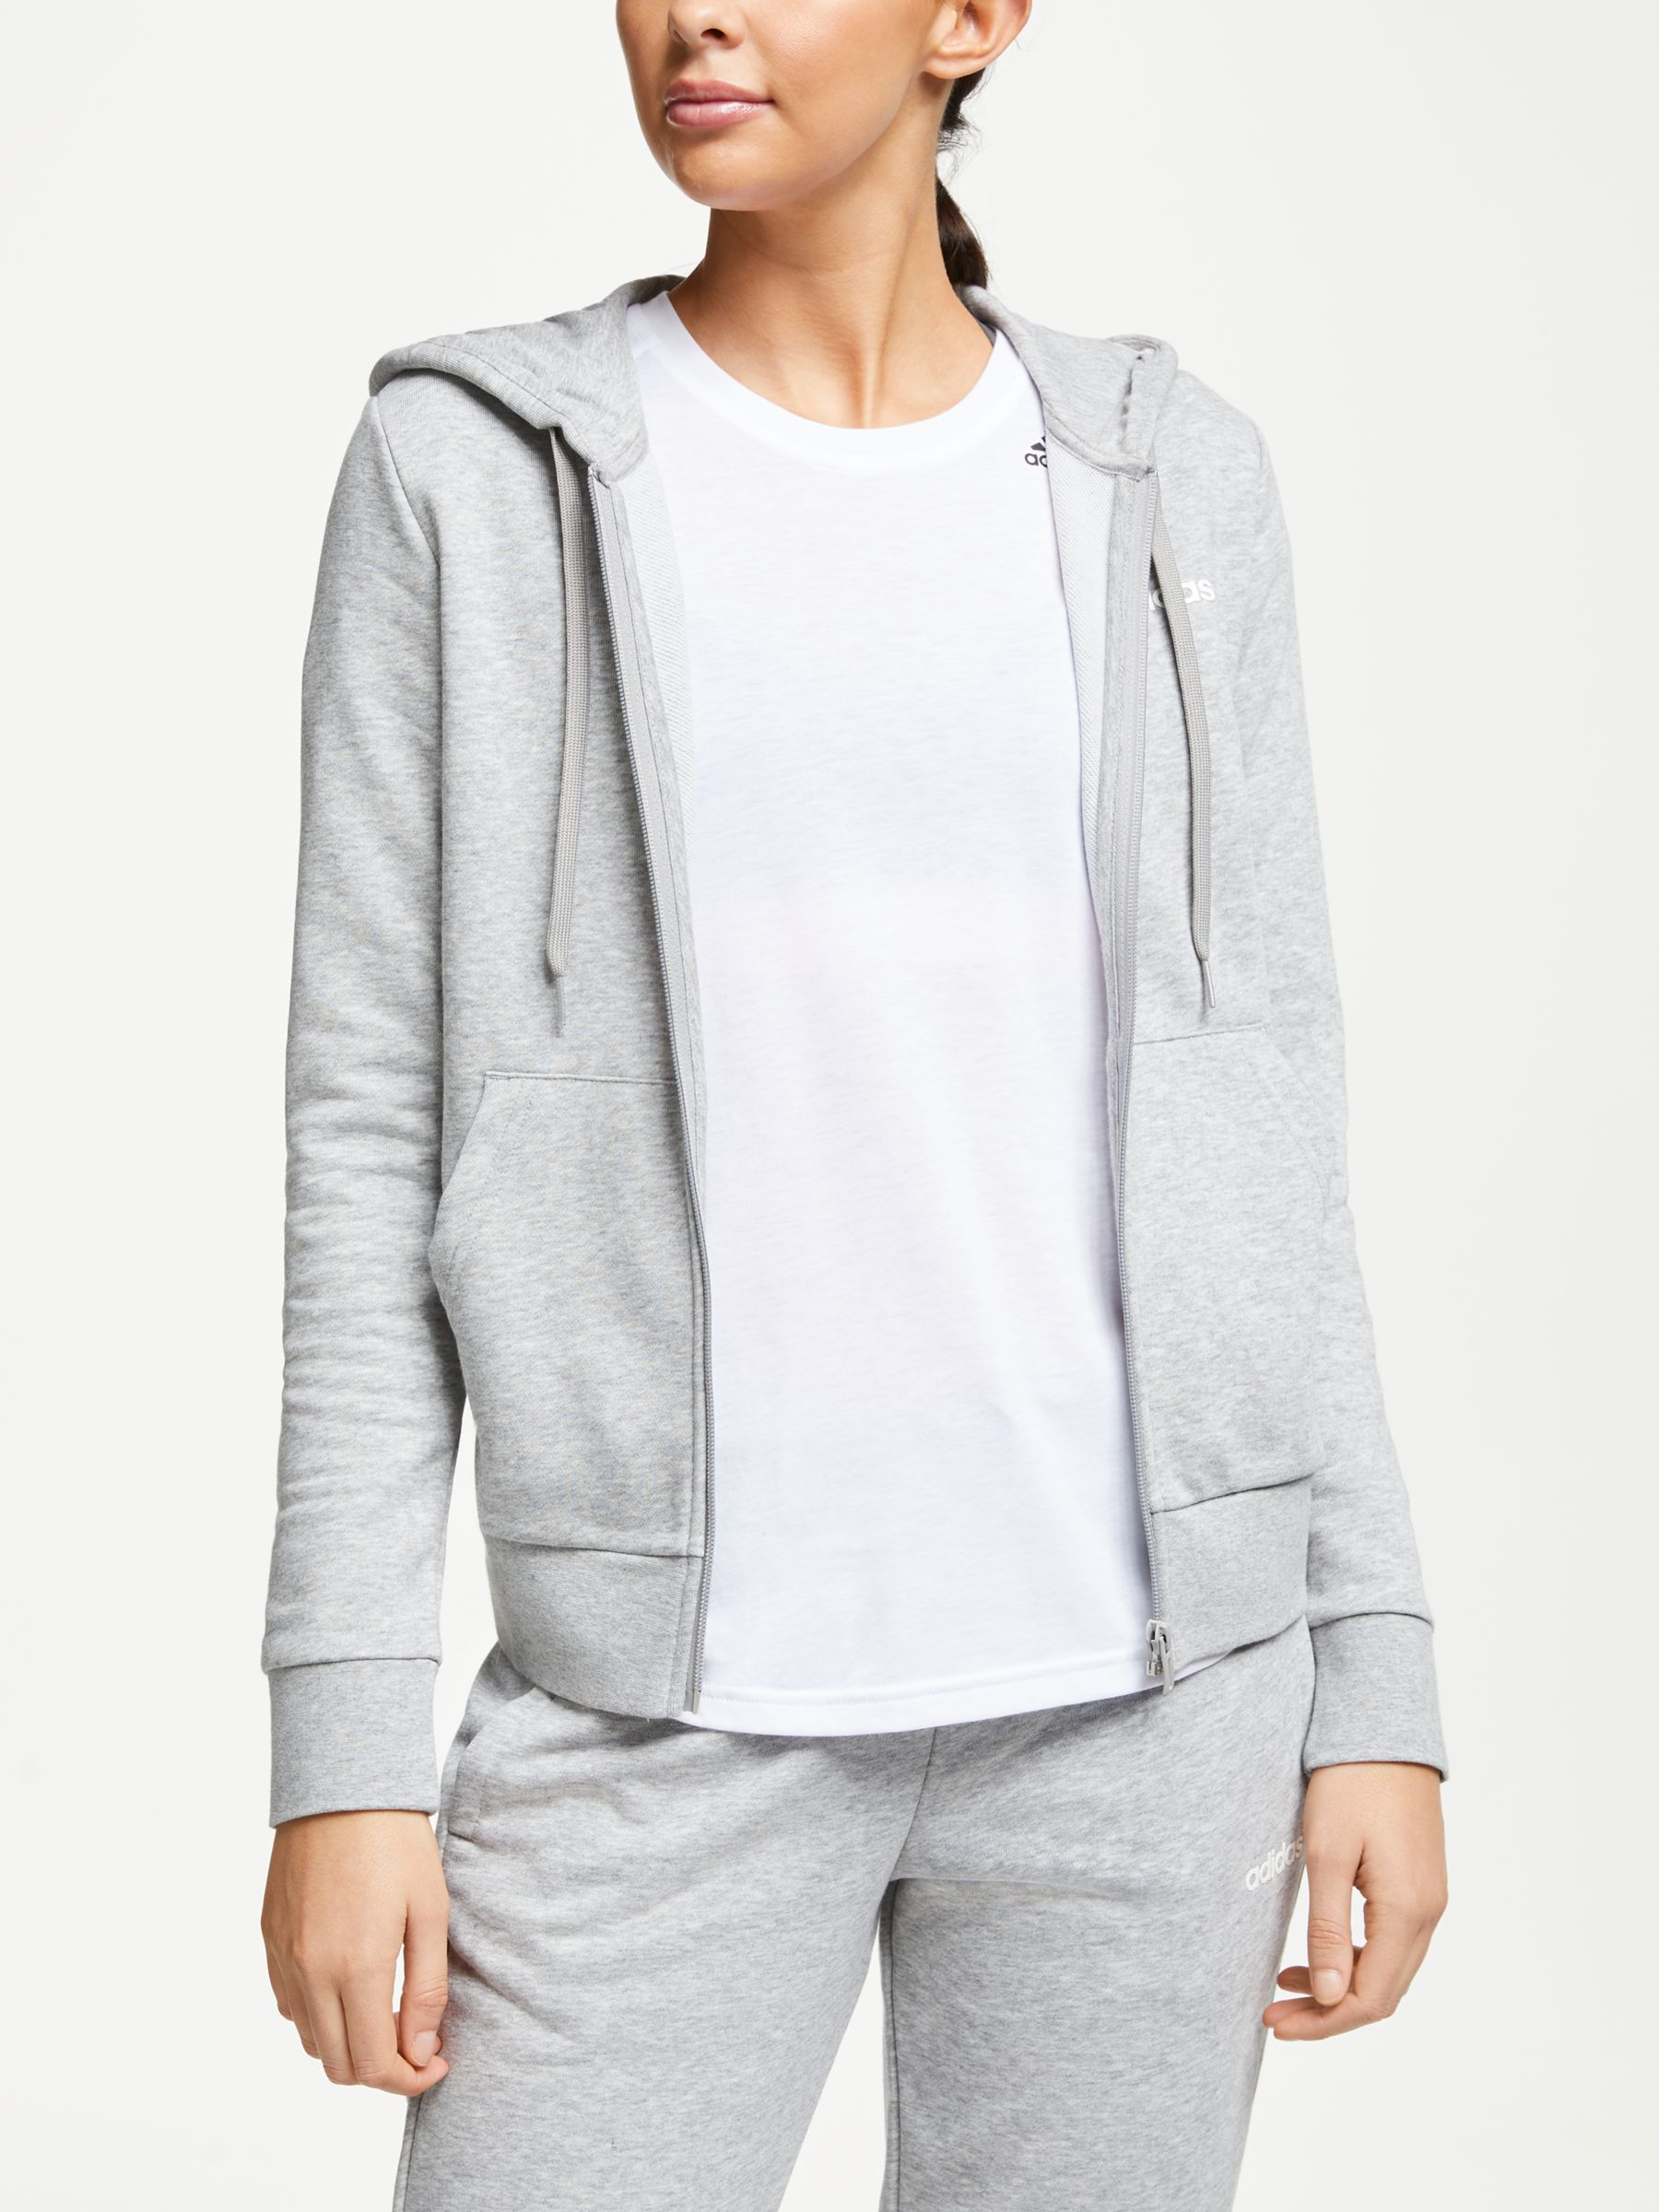 Adidas adidas Essentials Solid Full Zip Hoodie, Grey Heather